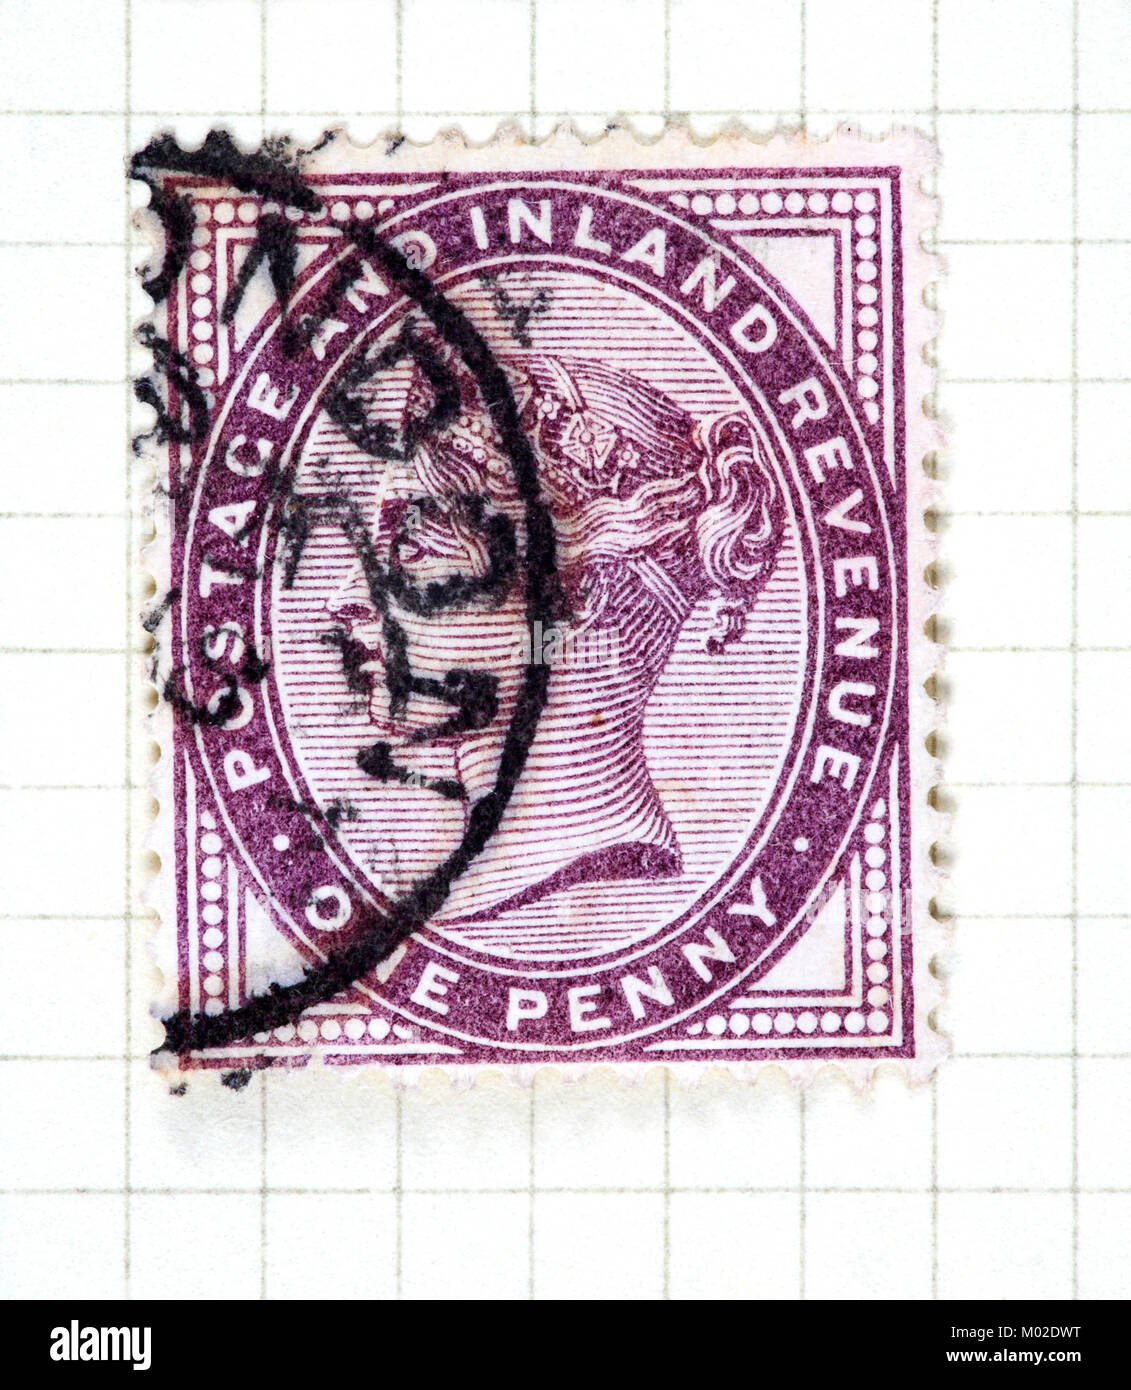 A Queen Victoria one penny lilac used stamp of 1881 issue. - Stock Image